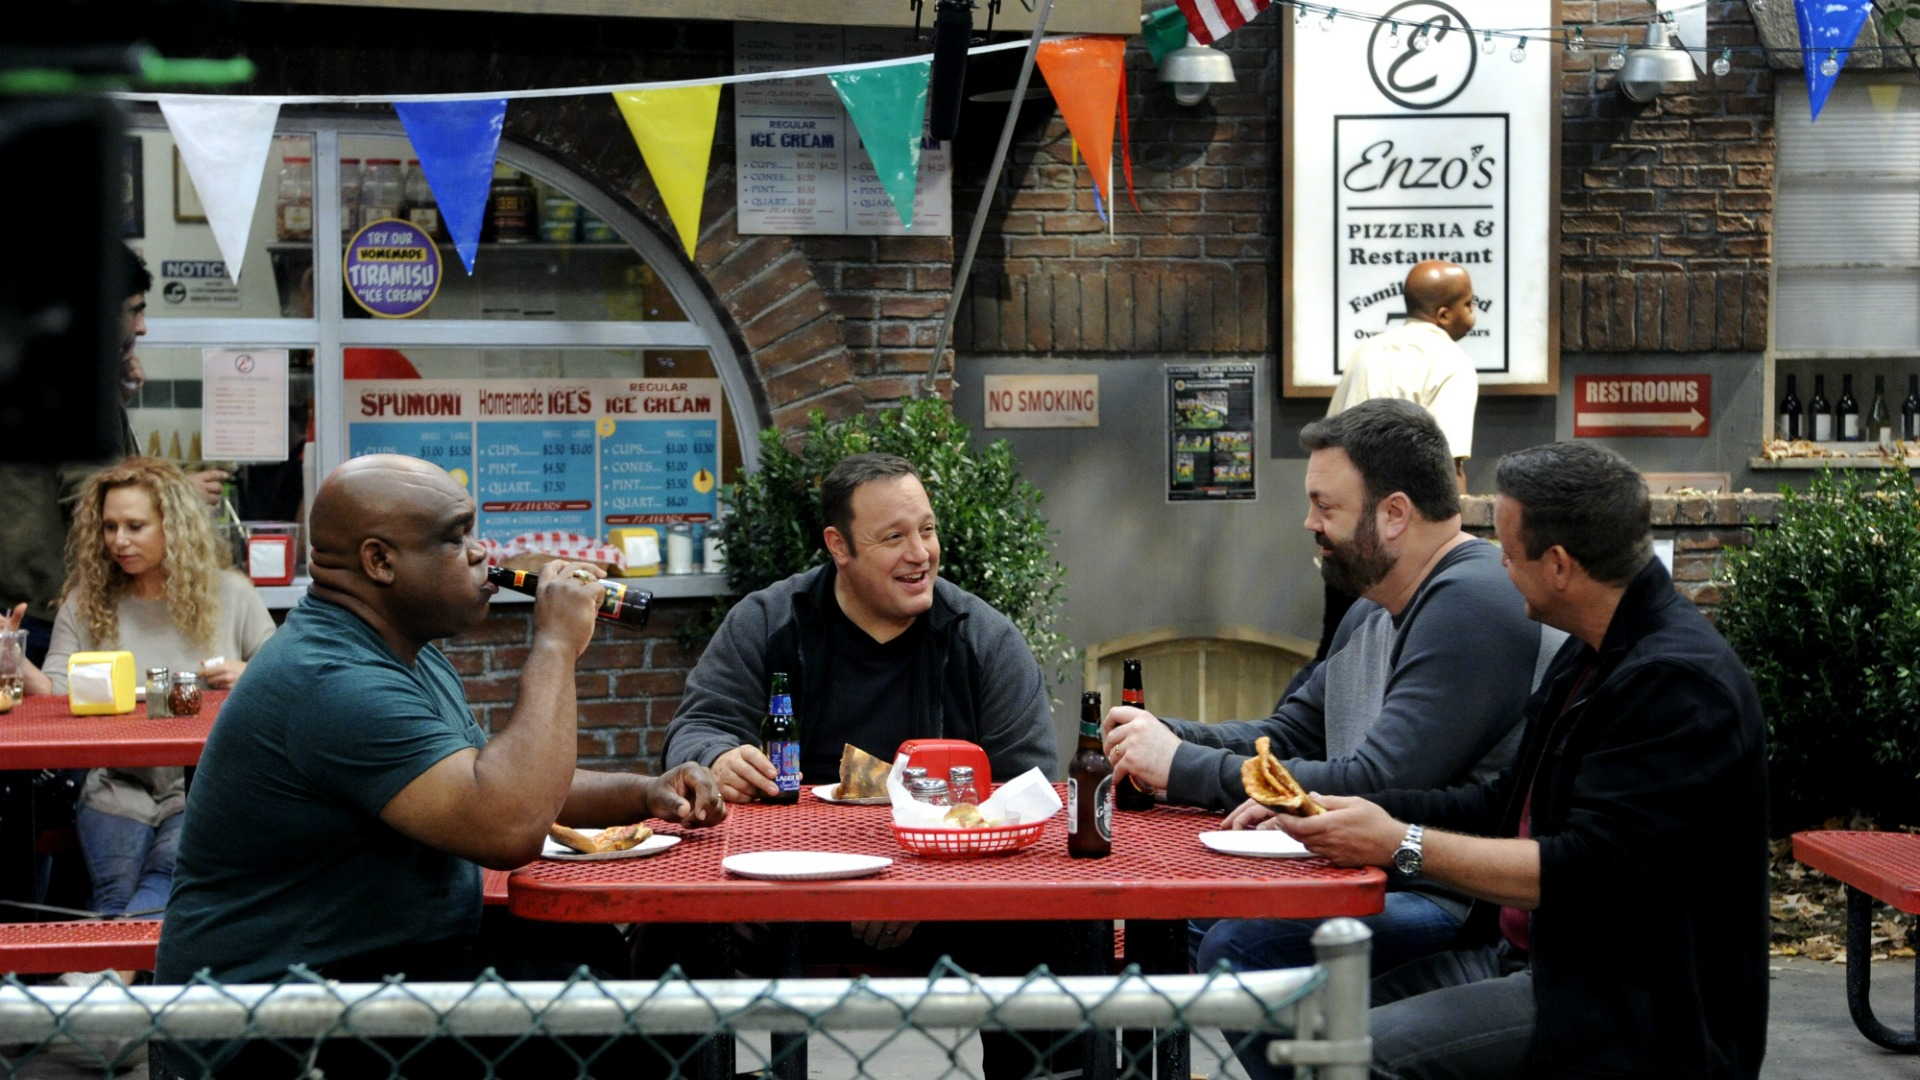 Kevin has lunch with the guys.